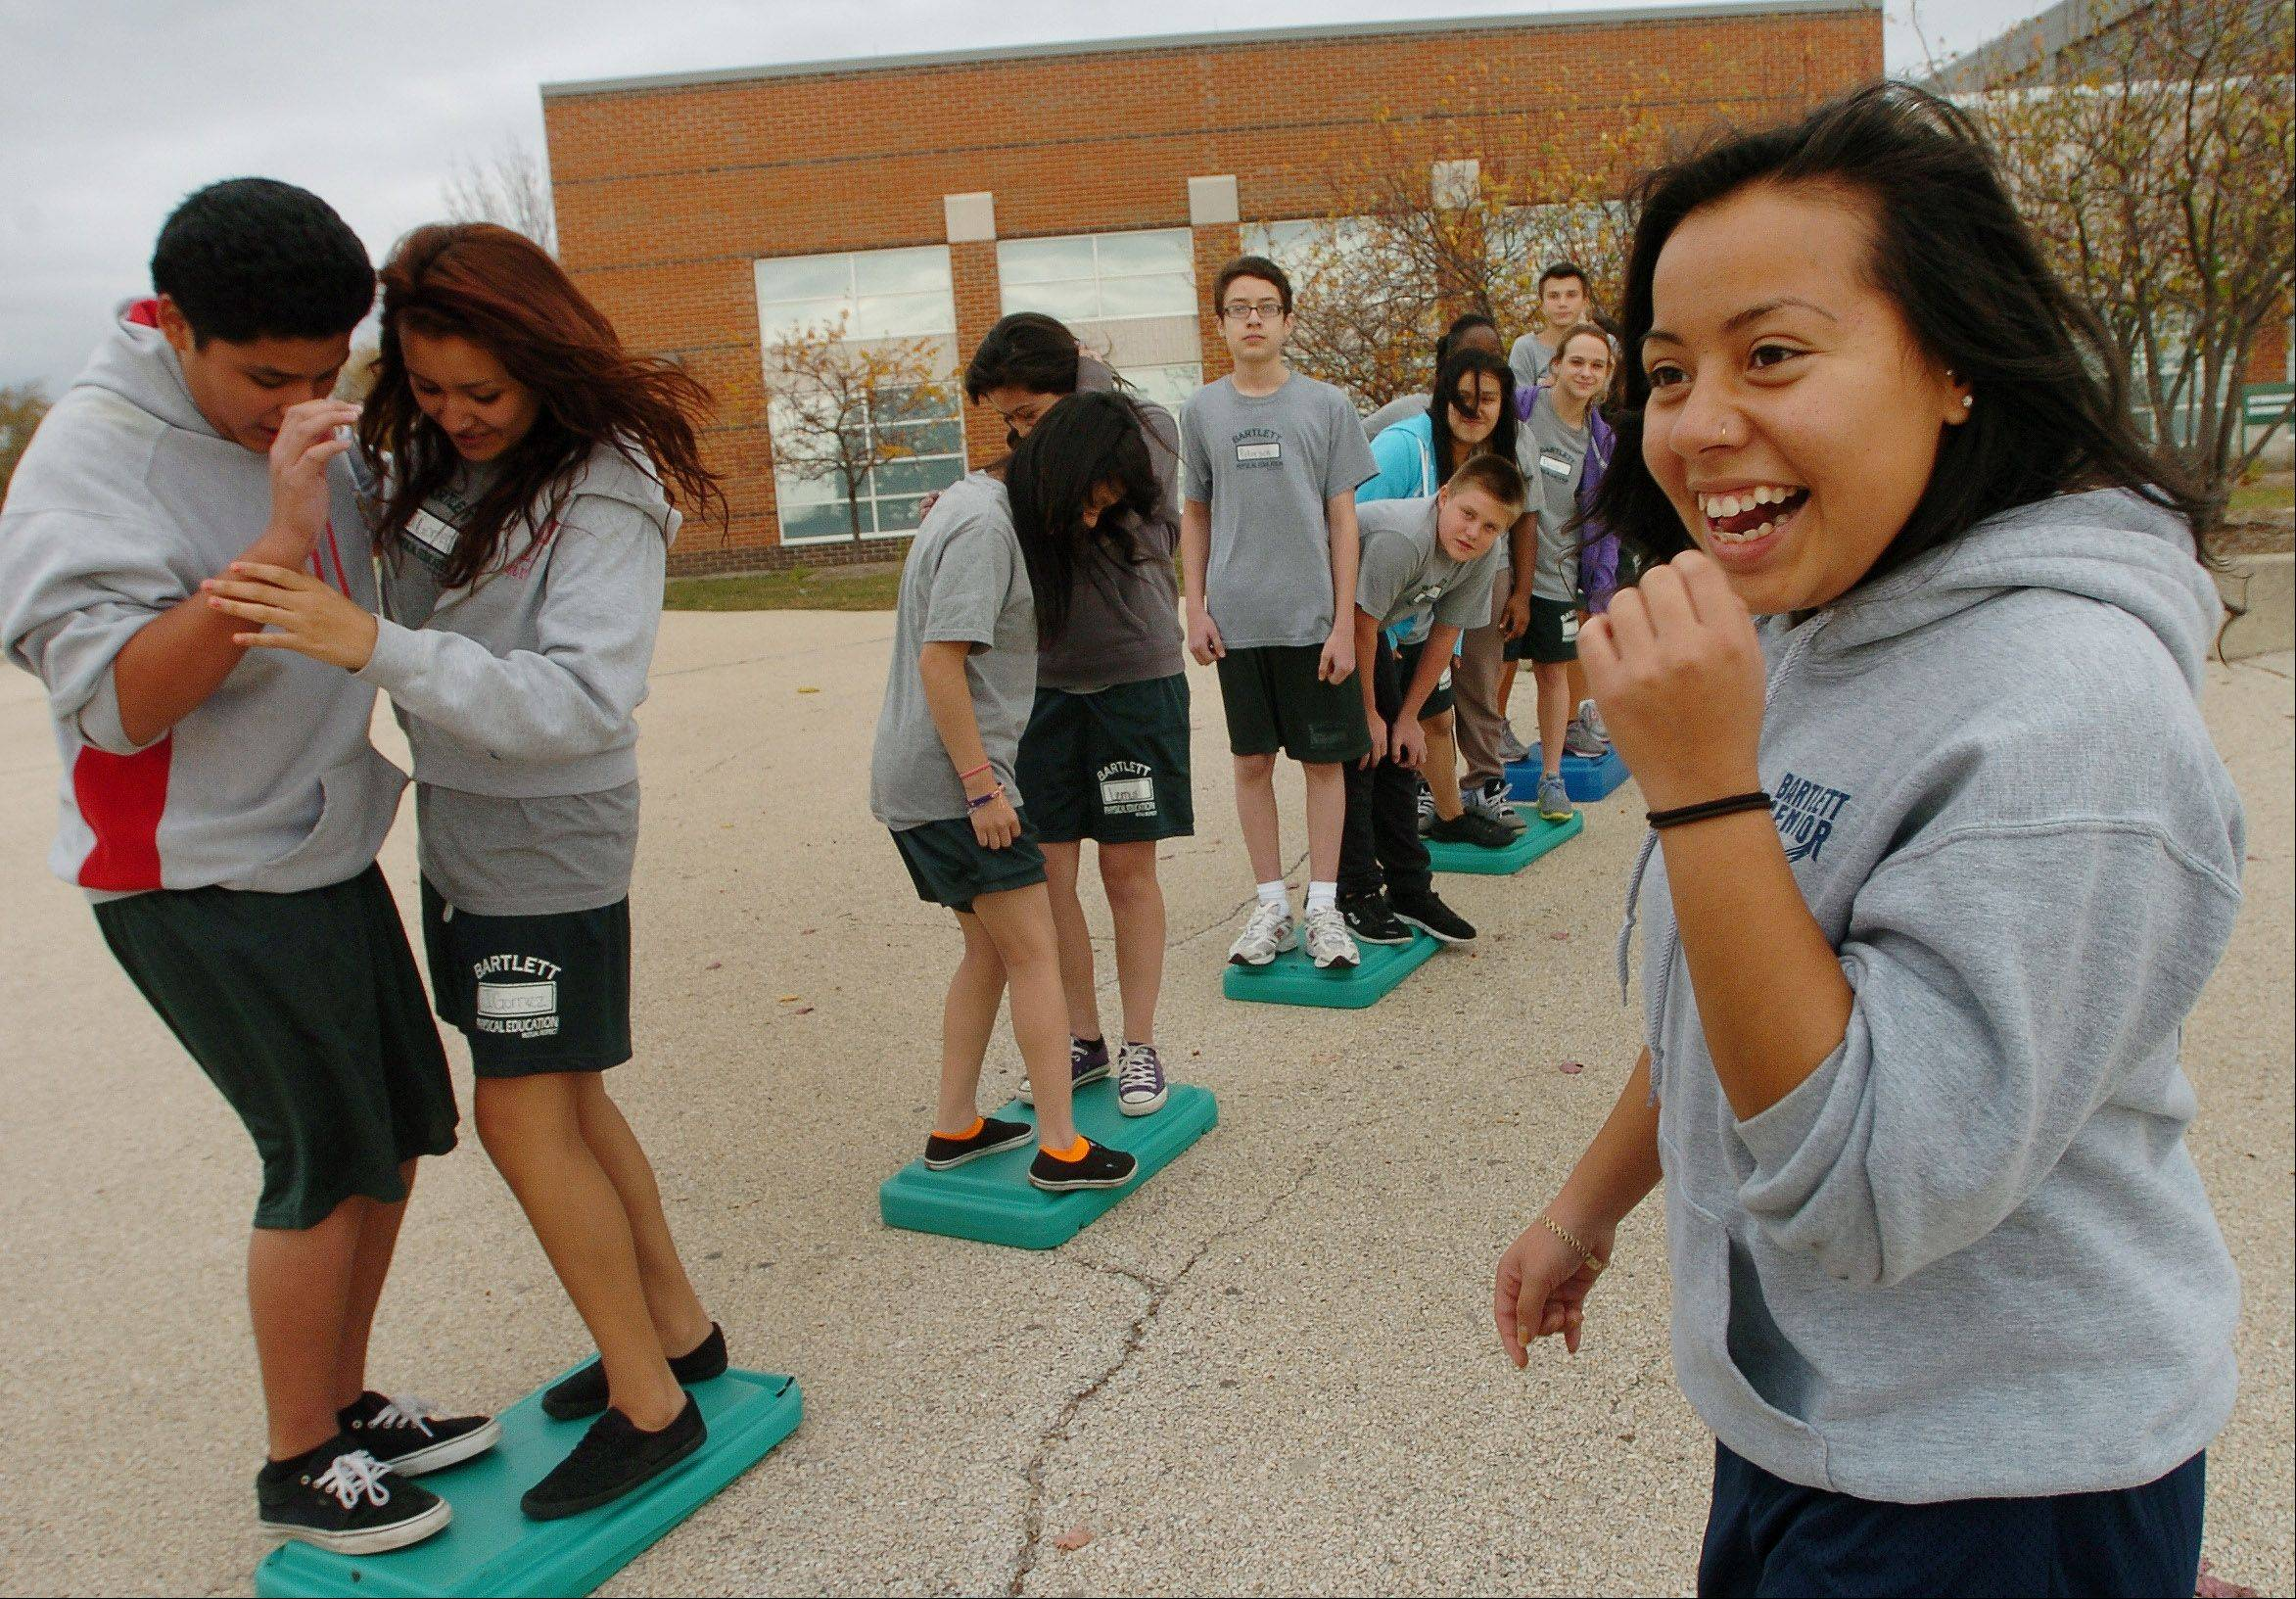 Selena Cuevas, right, guides freshmen through a team building exercise during a Bartlett High School senior leaders program.